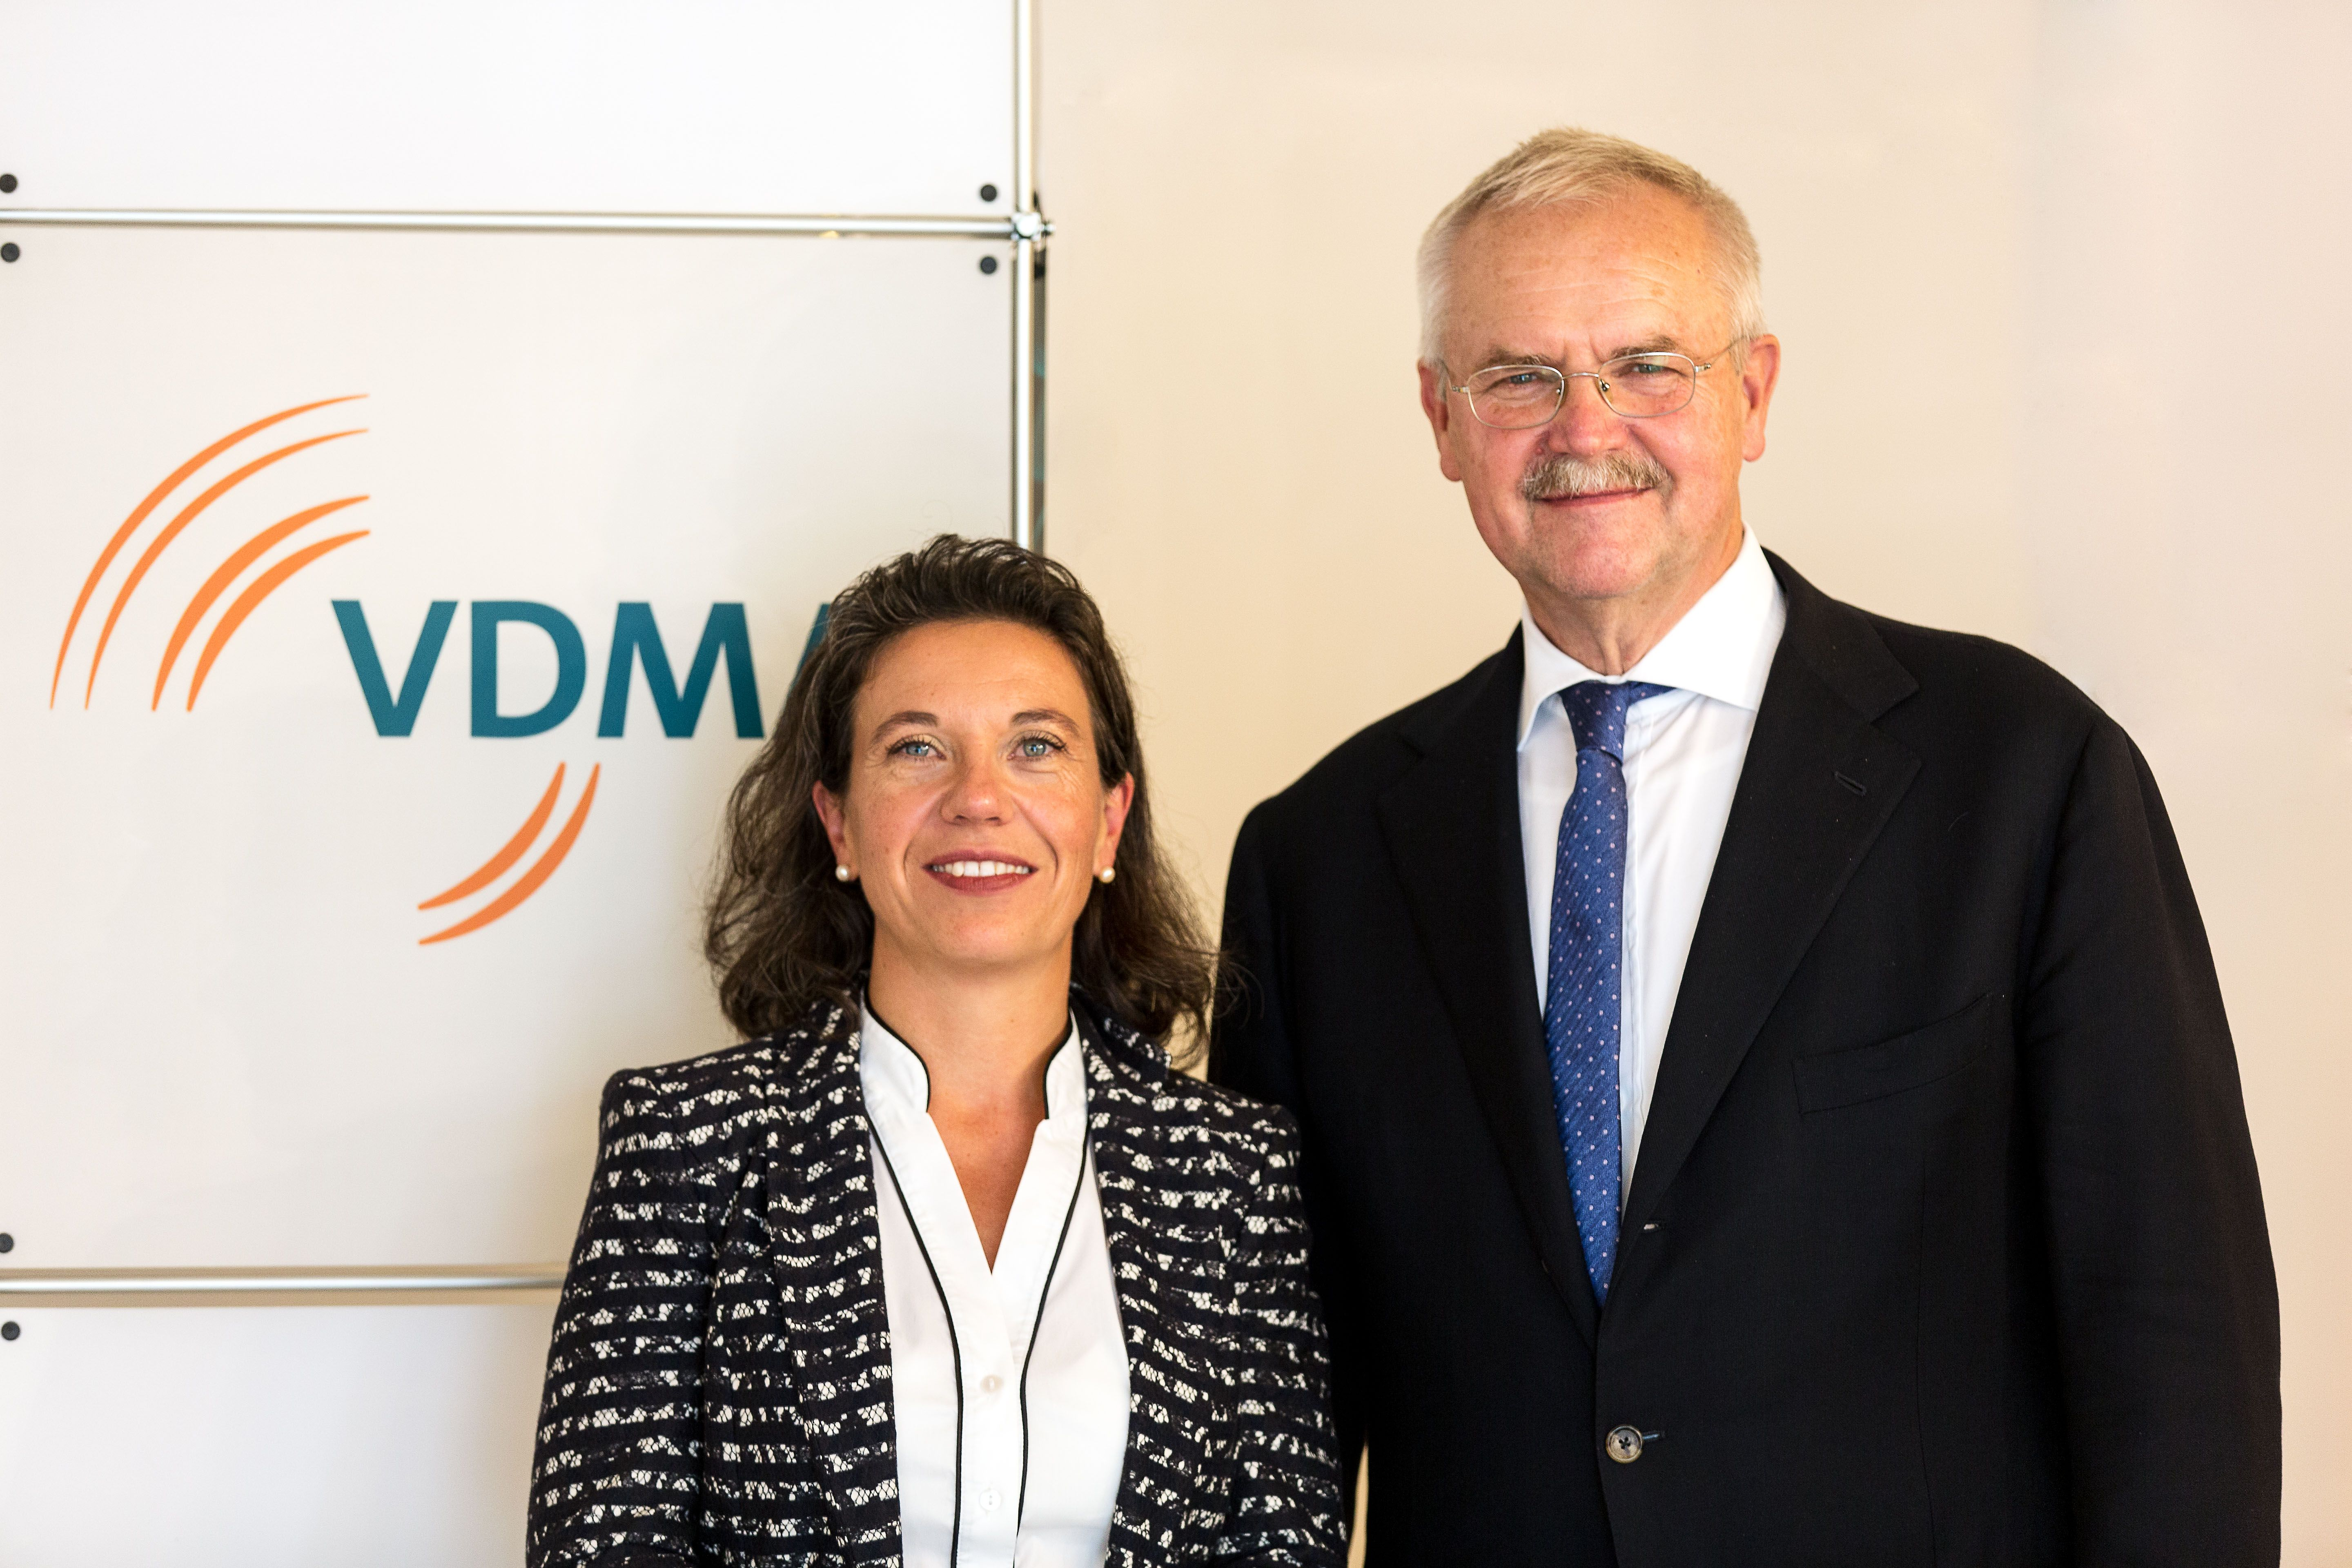 Chairperson and Vice-Chairperson of VDMA Textile Machinery Association: Regina Brückner, Fritz P. Mayer. © VDMA